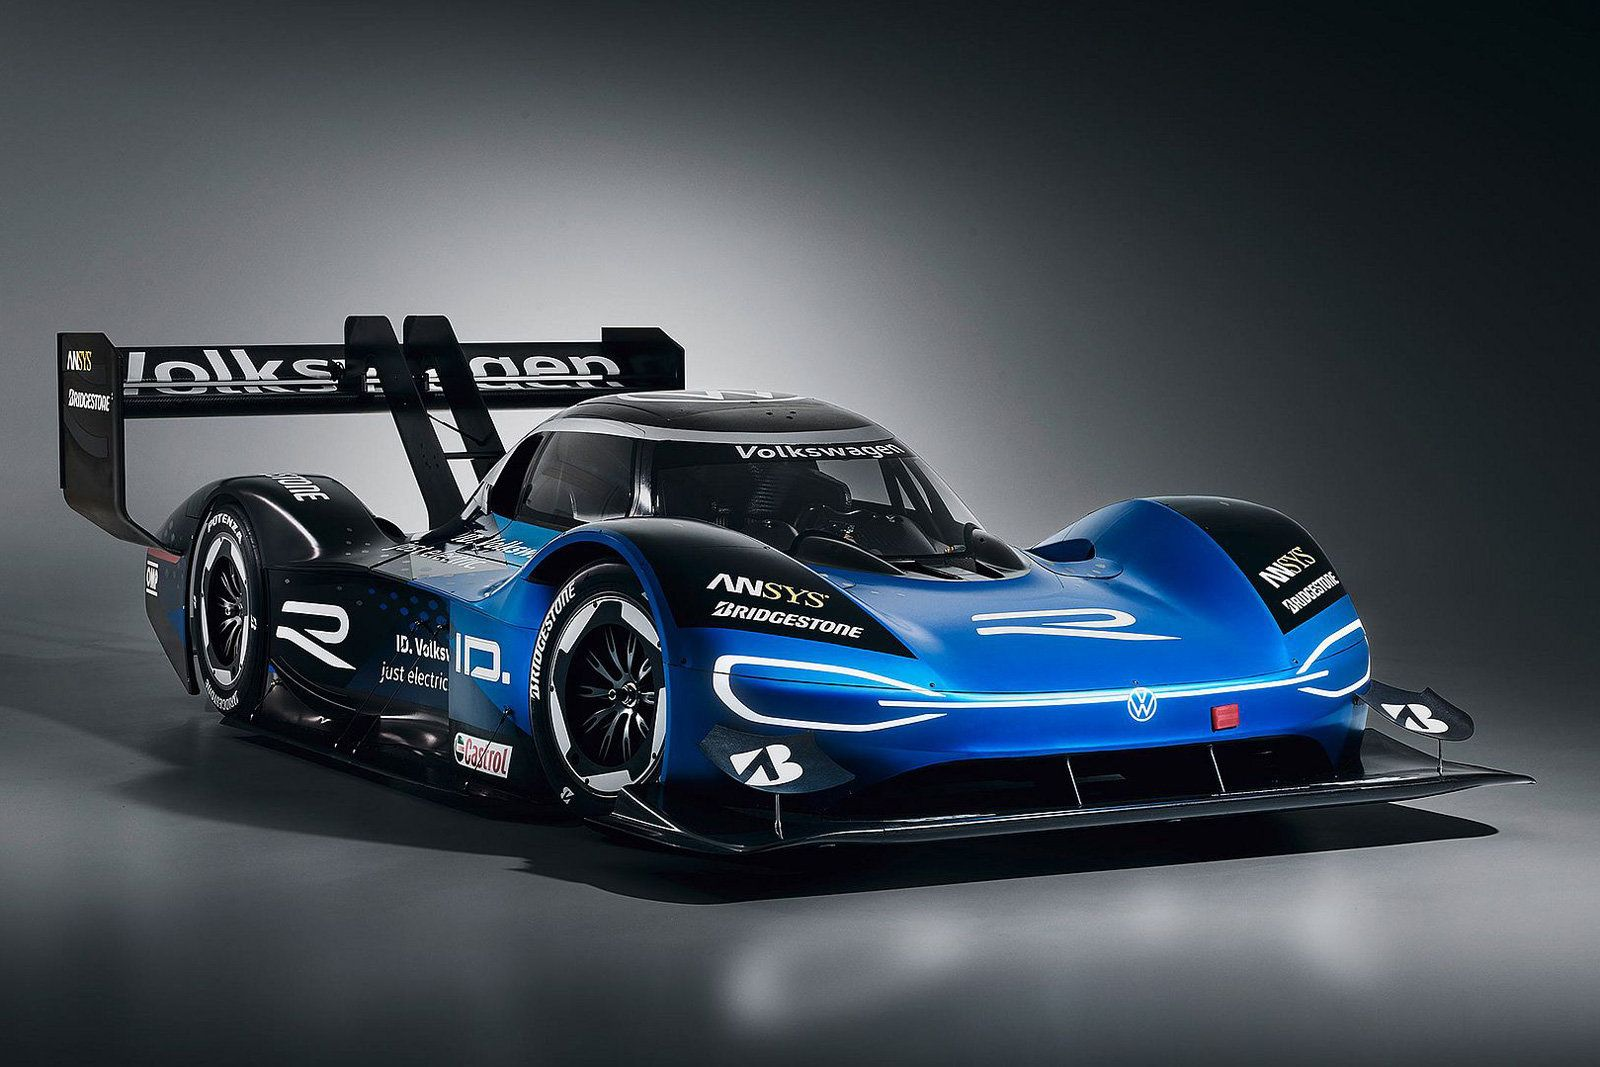 Vw S Factory Race Teams Will Exclusively Drive Electric Cars Vw Motorsport Racing Volkswagen